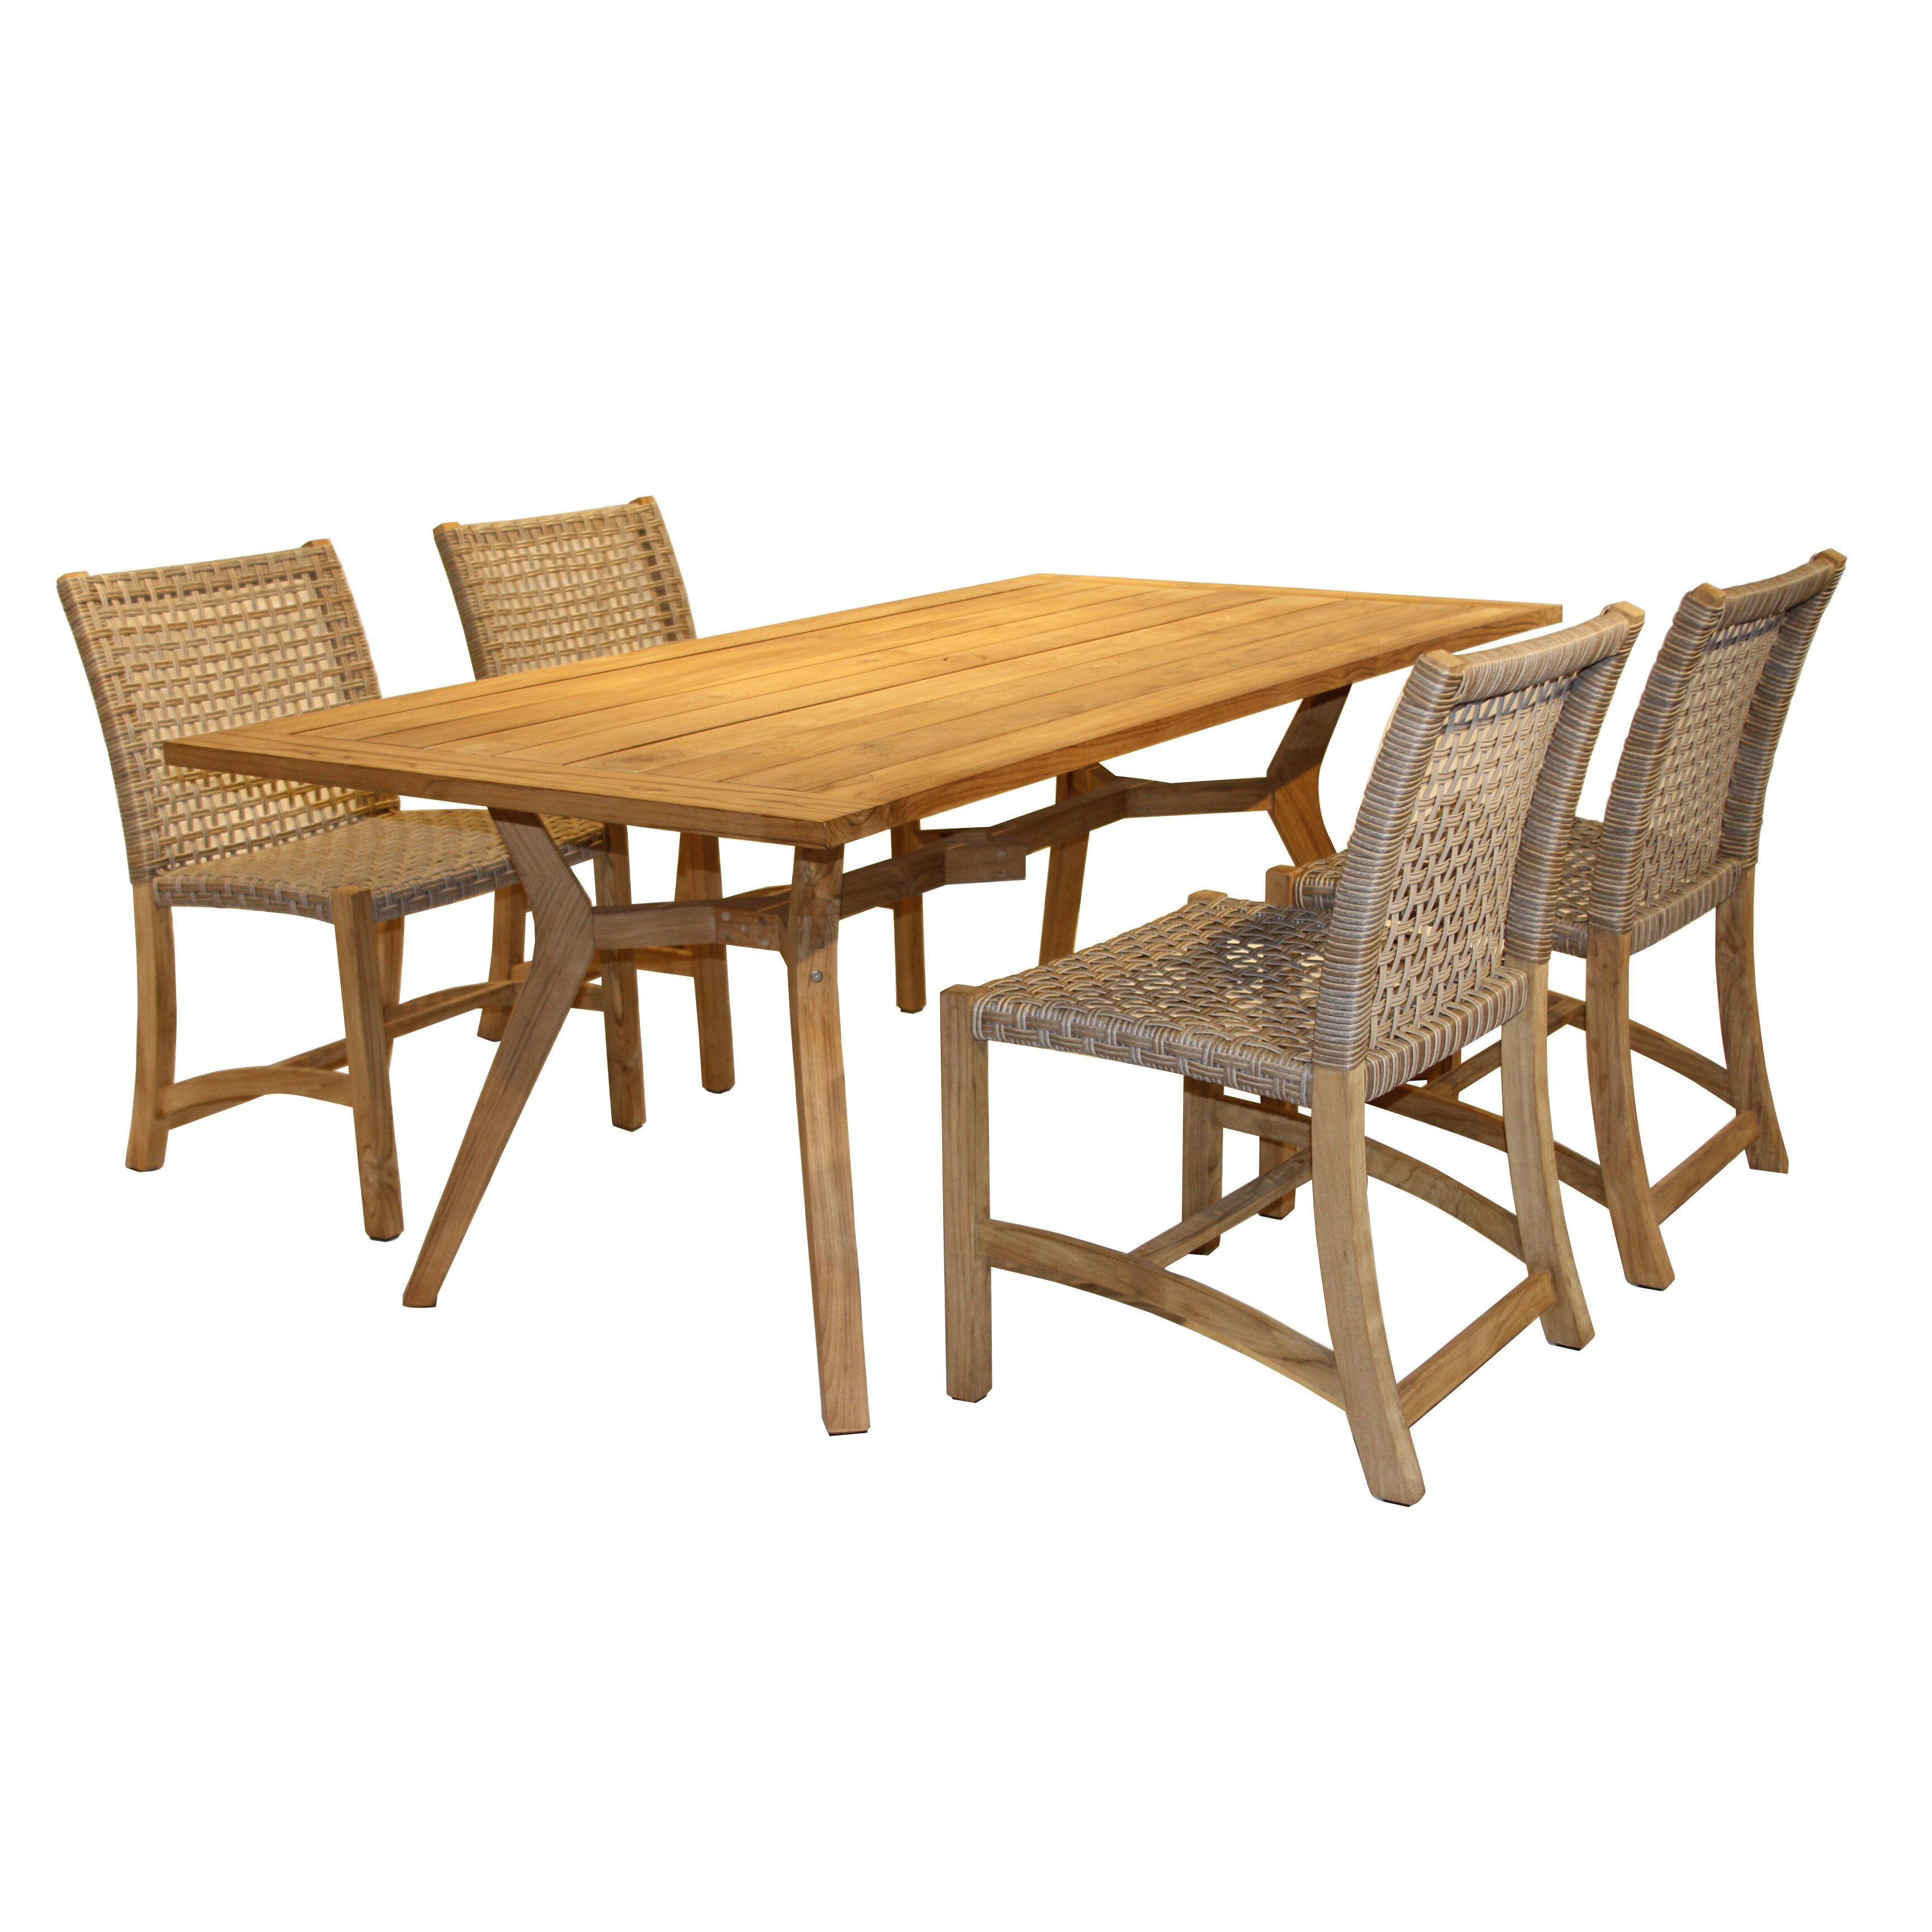 Get Free High Quality HD Wallpapers Dining Room Tables For Sale In Maryland